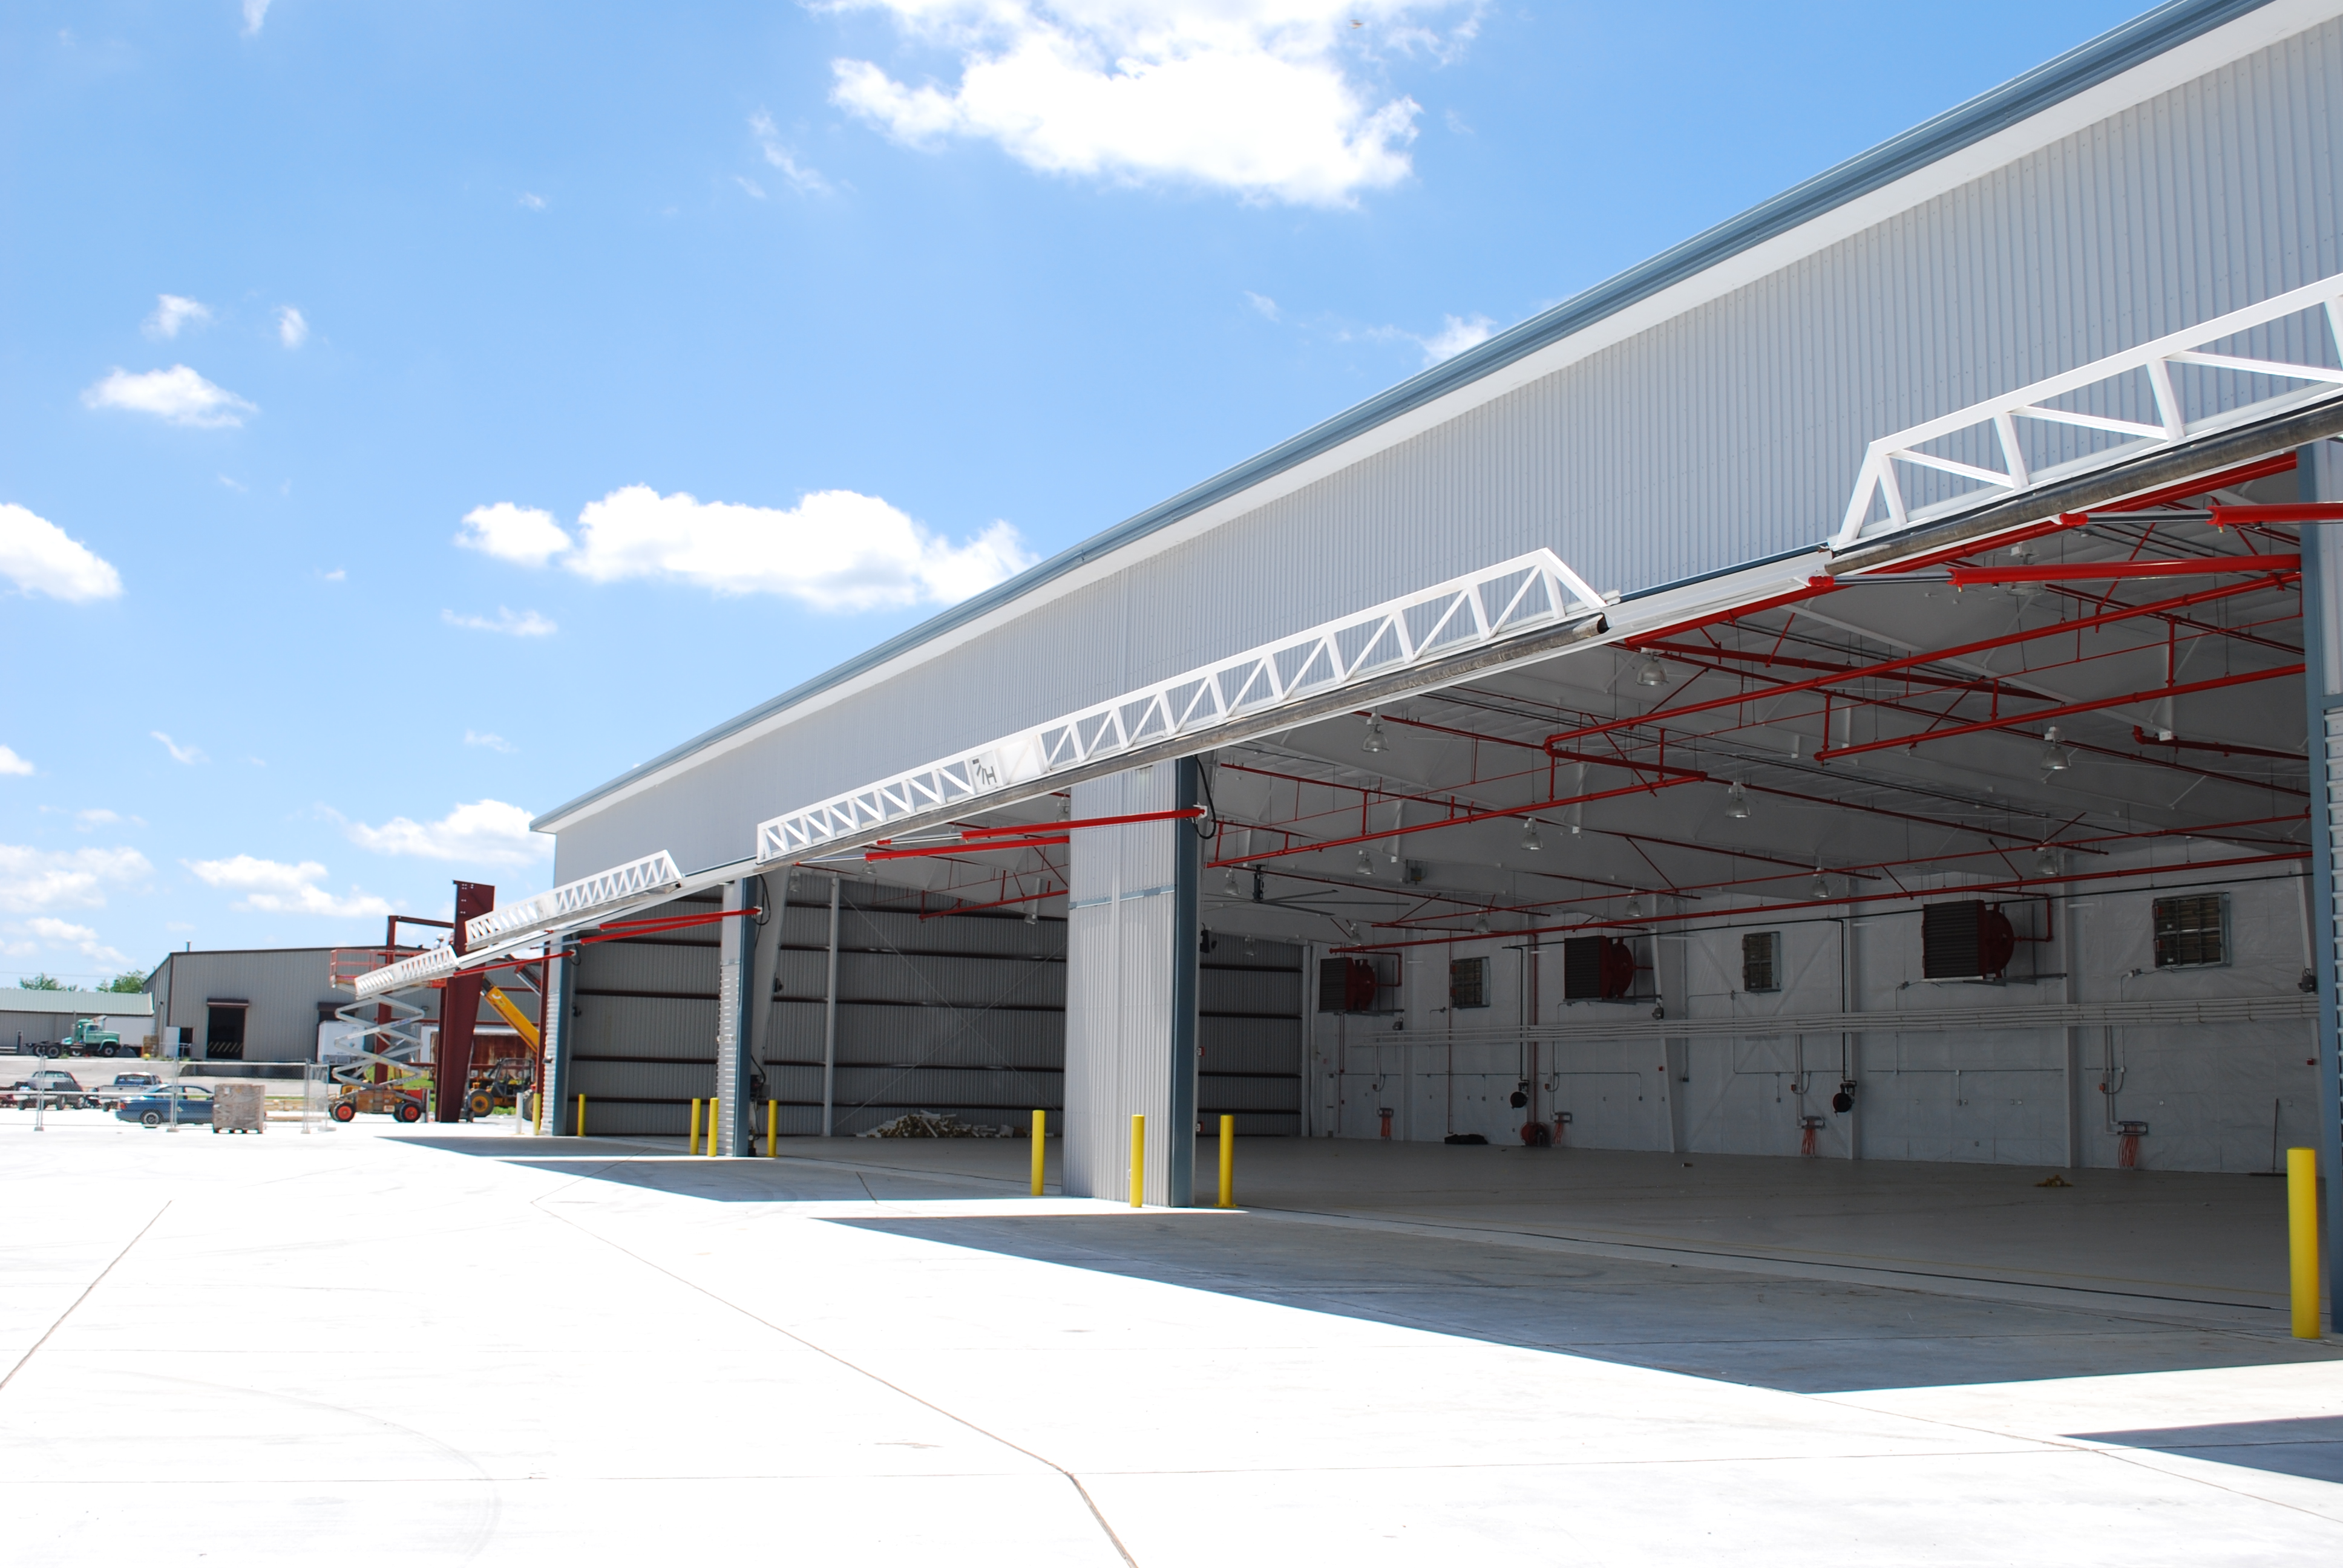 london-joint-operations-facility-exterior-garage